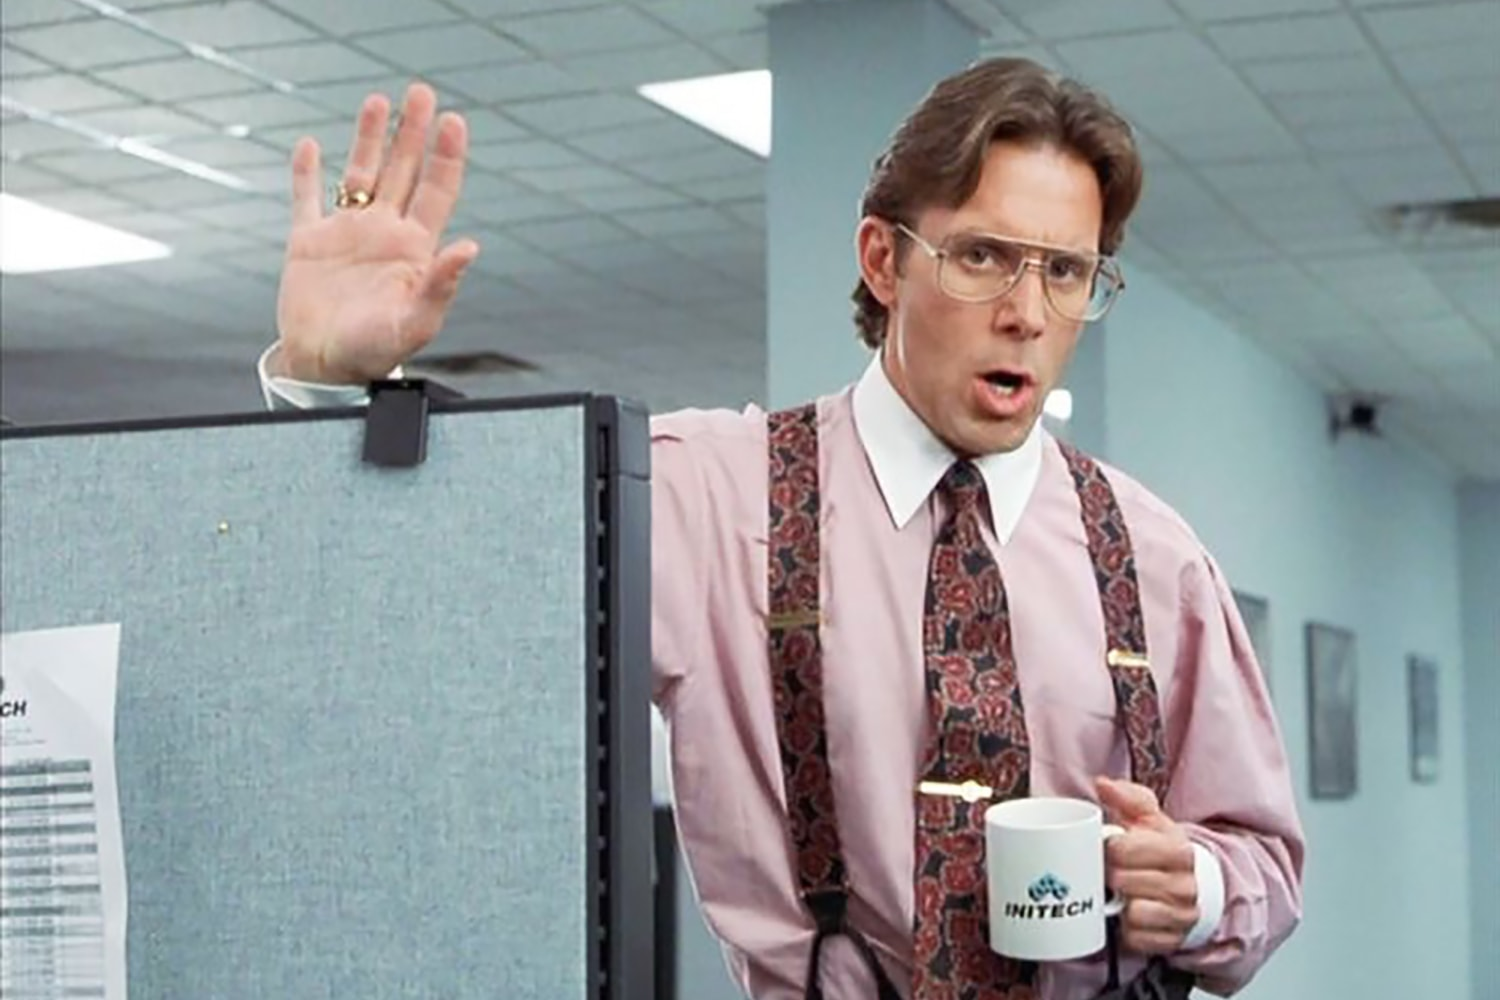 7 Bad Bosses That'll Make You Feel Way Better About Yours